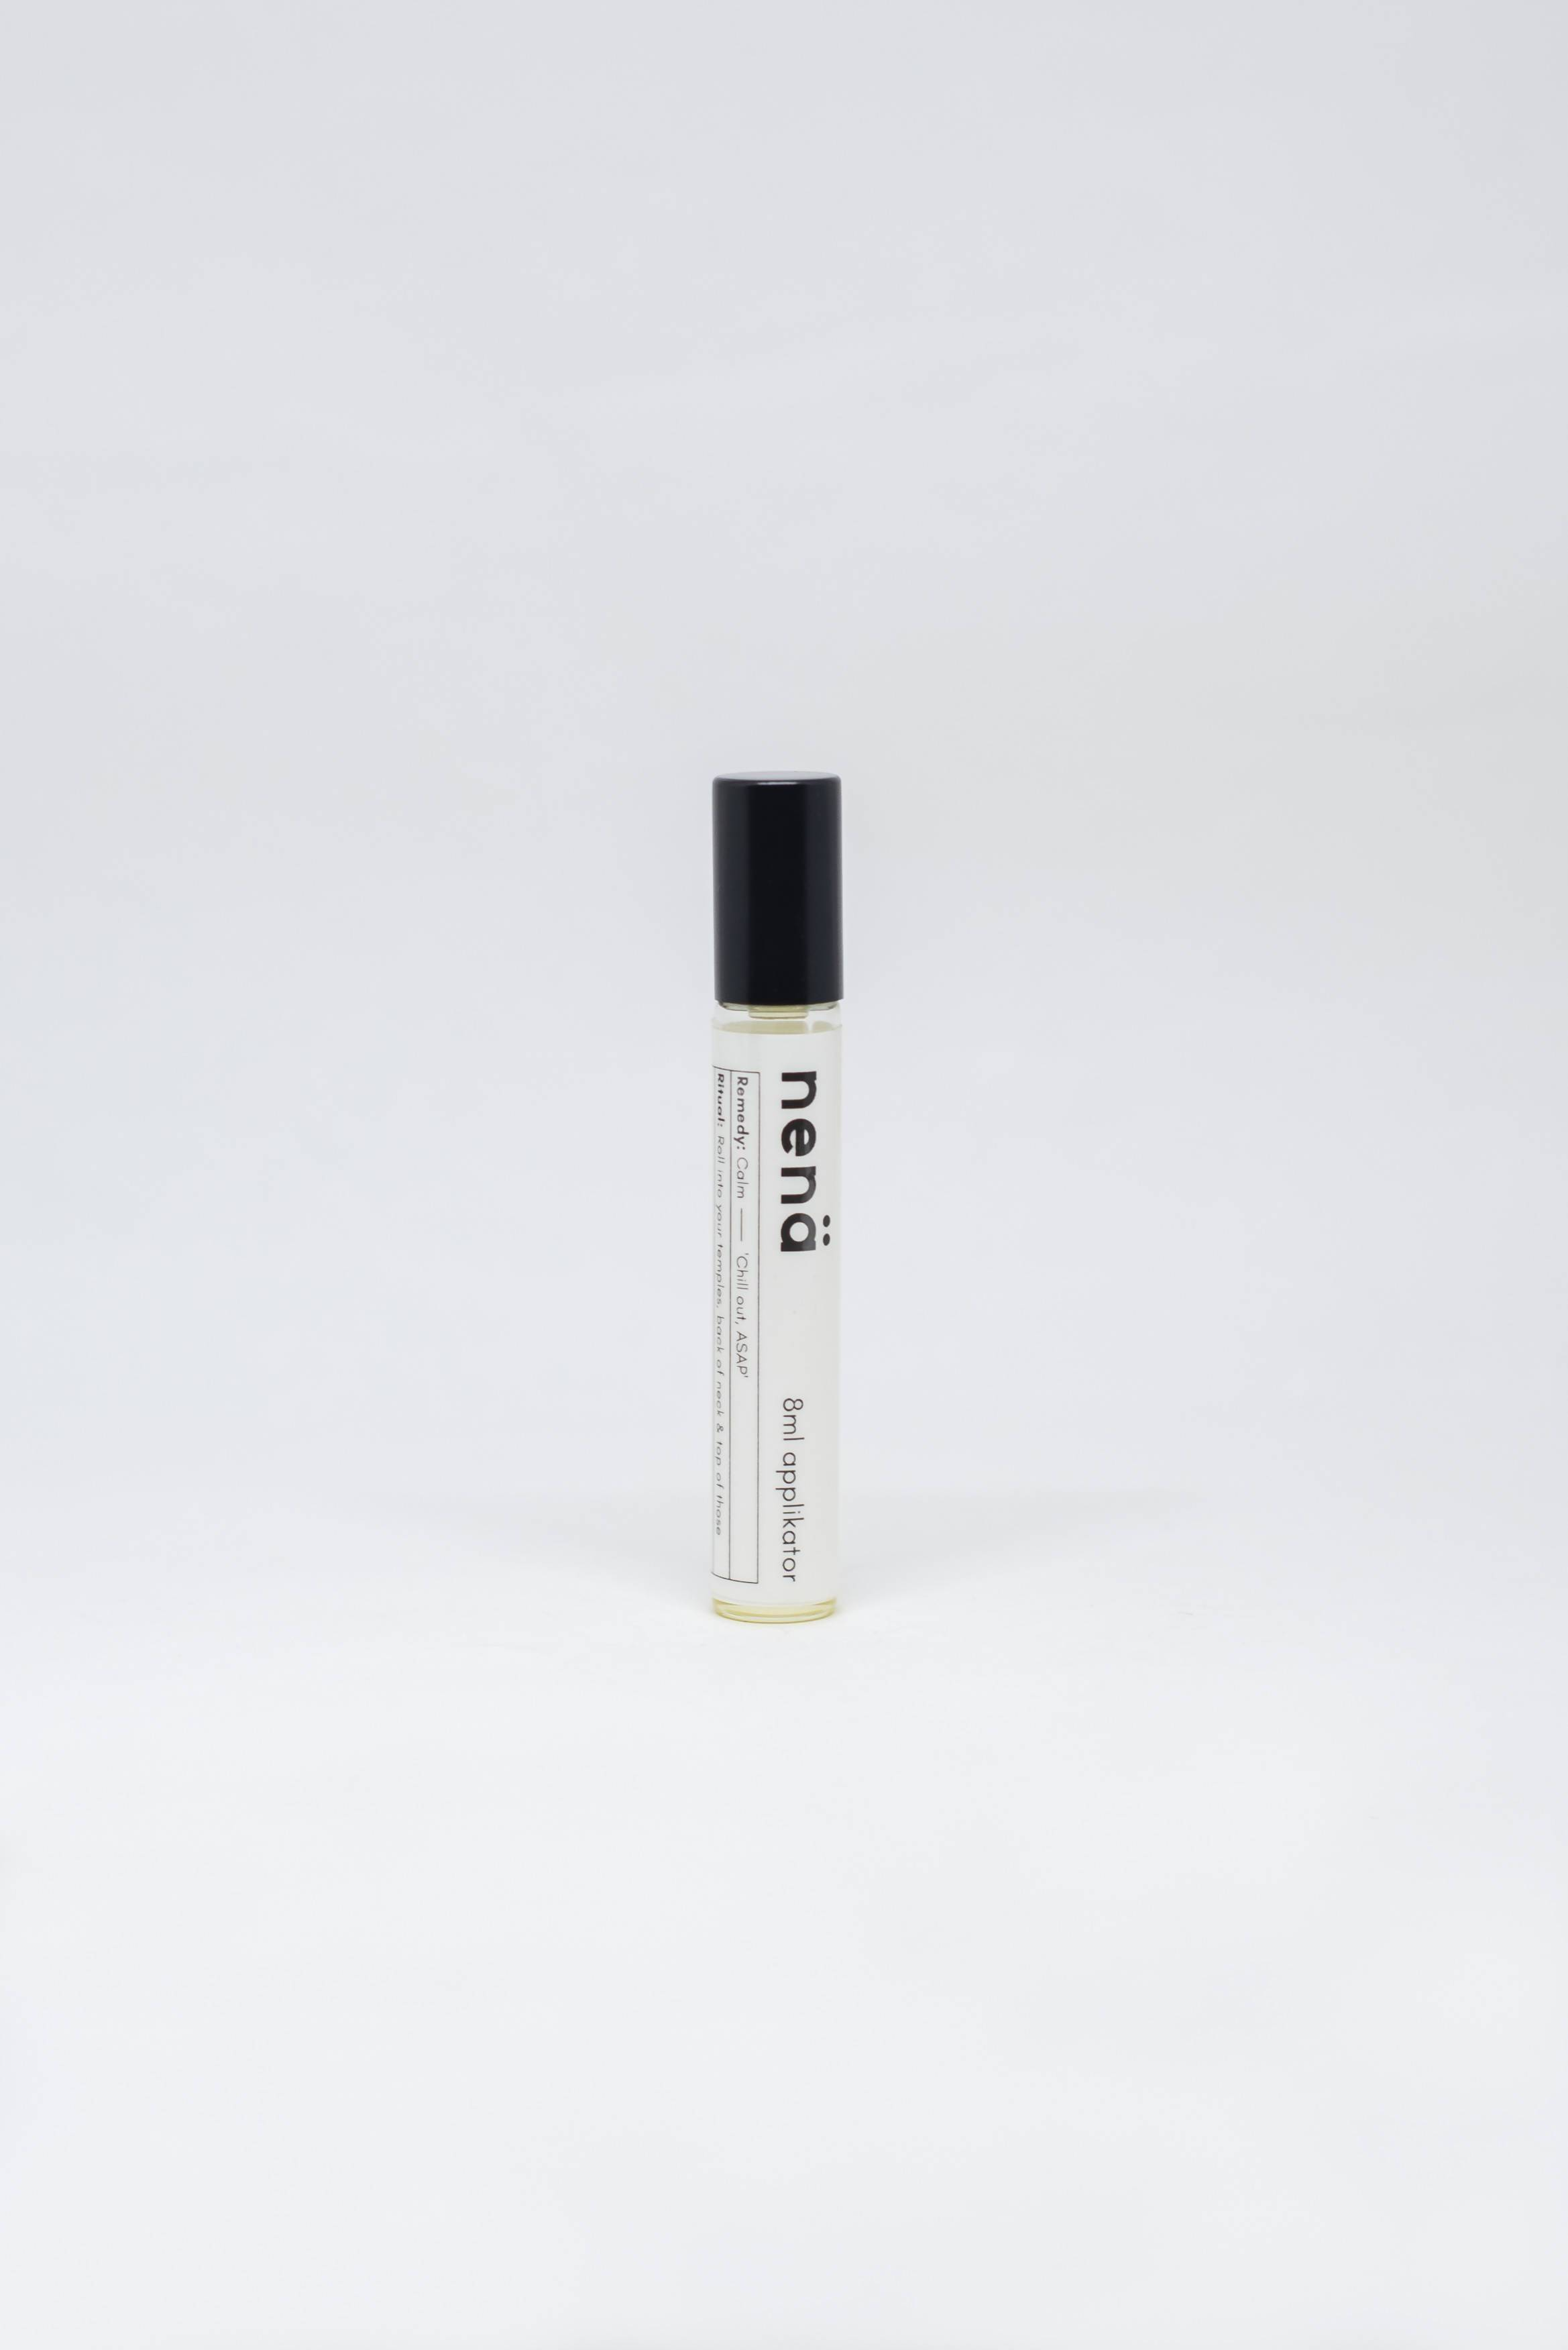 nenä Calm Remedy Roller - Essential Oil Roll-Ons - Nena - Naiise